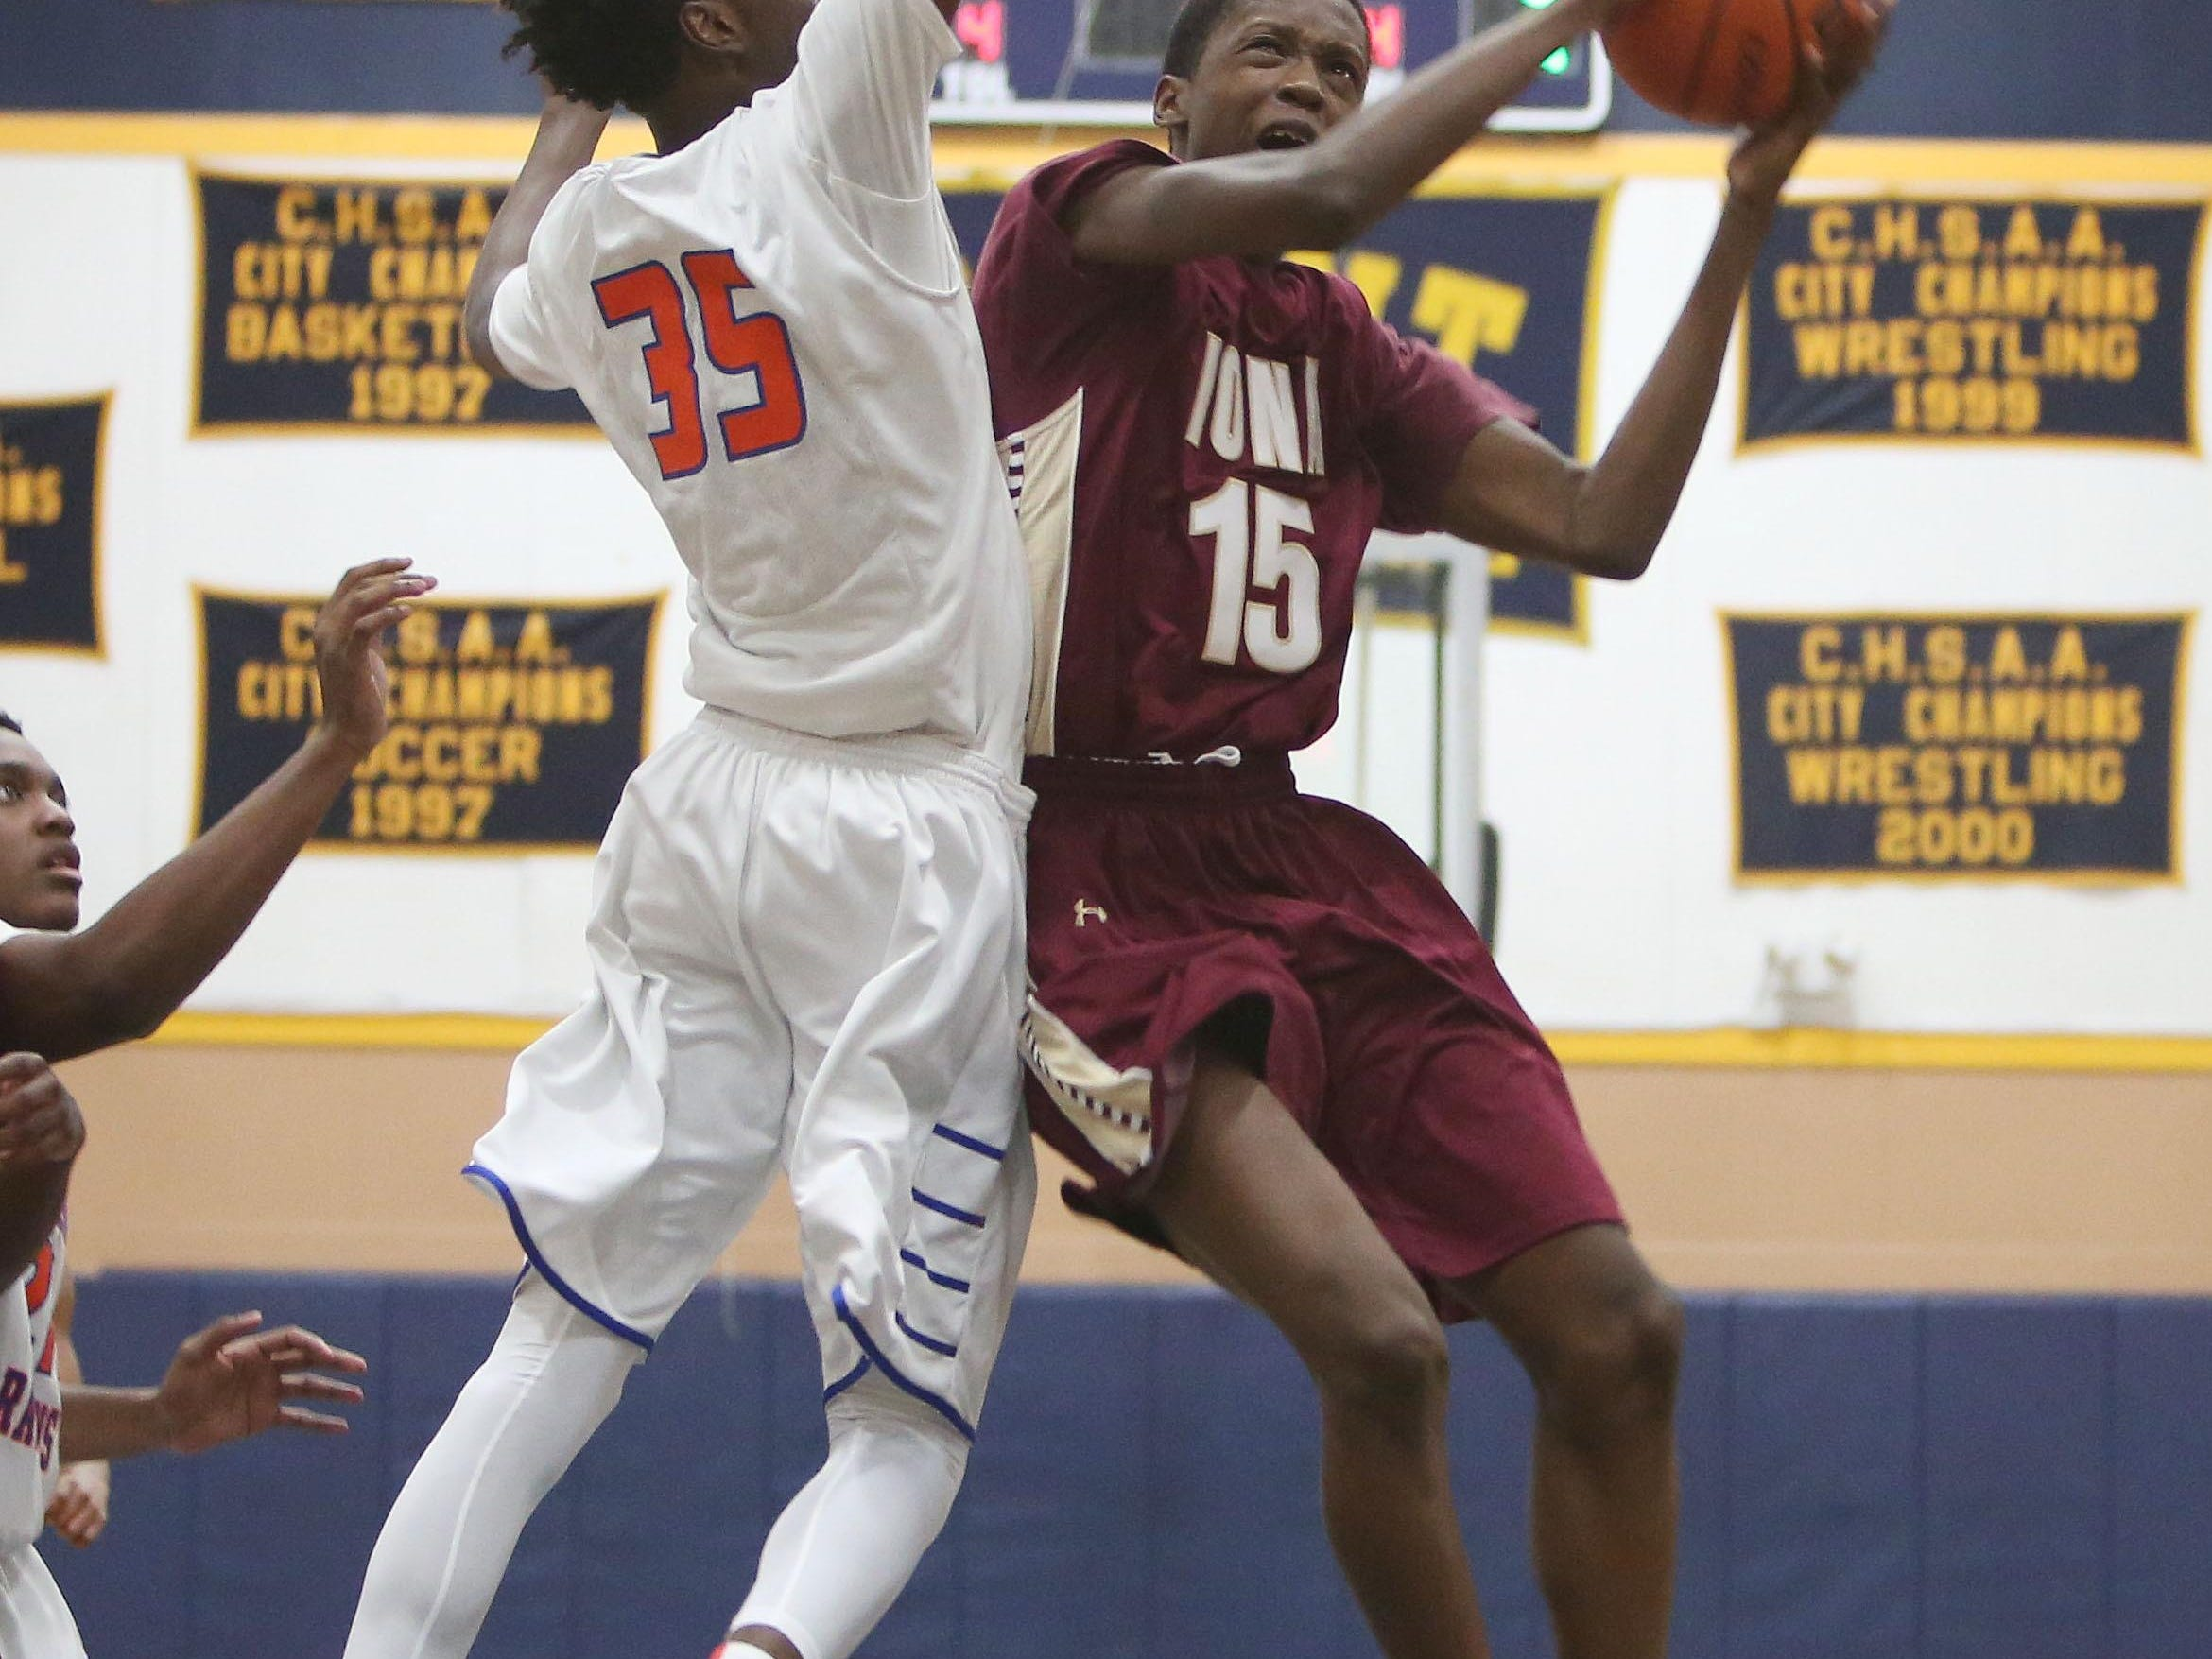 Iona's Souleymane Koureissi (15) finds his path to the basket blocked by Saint Raymond's Sidney Wilson (35) during the CHSAA Archdiocesan tournament semifinal at Mount Saint Michael Academy in the Bronx Feb. 23, 2016. Saint Raymond won the game 55-47.